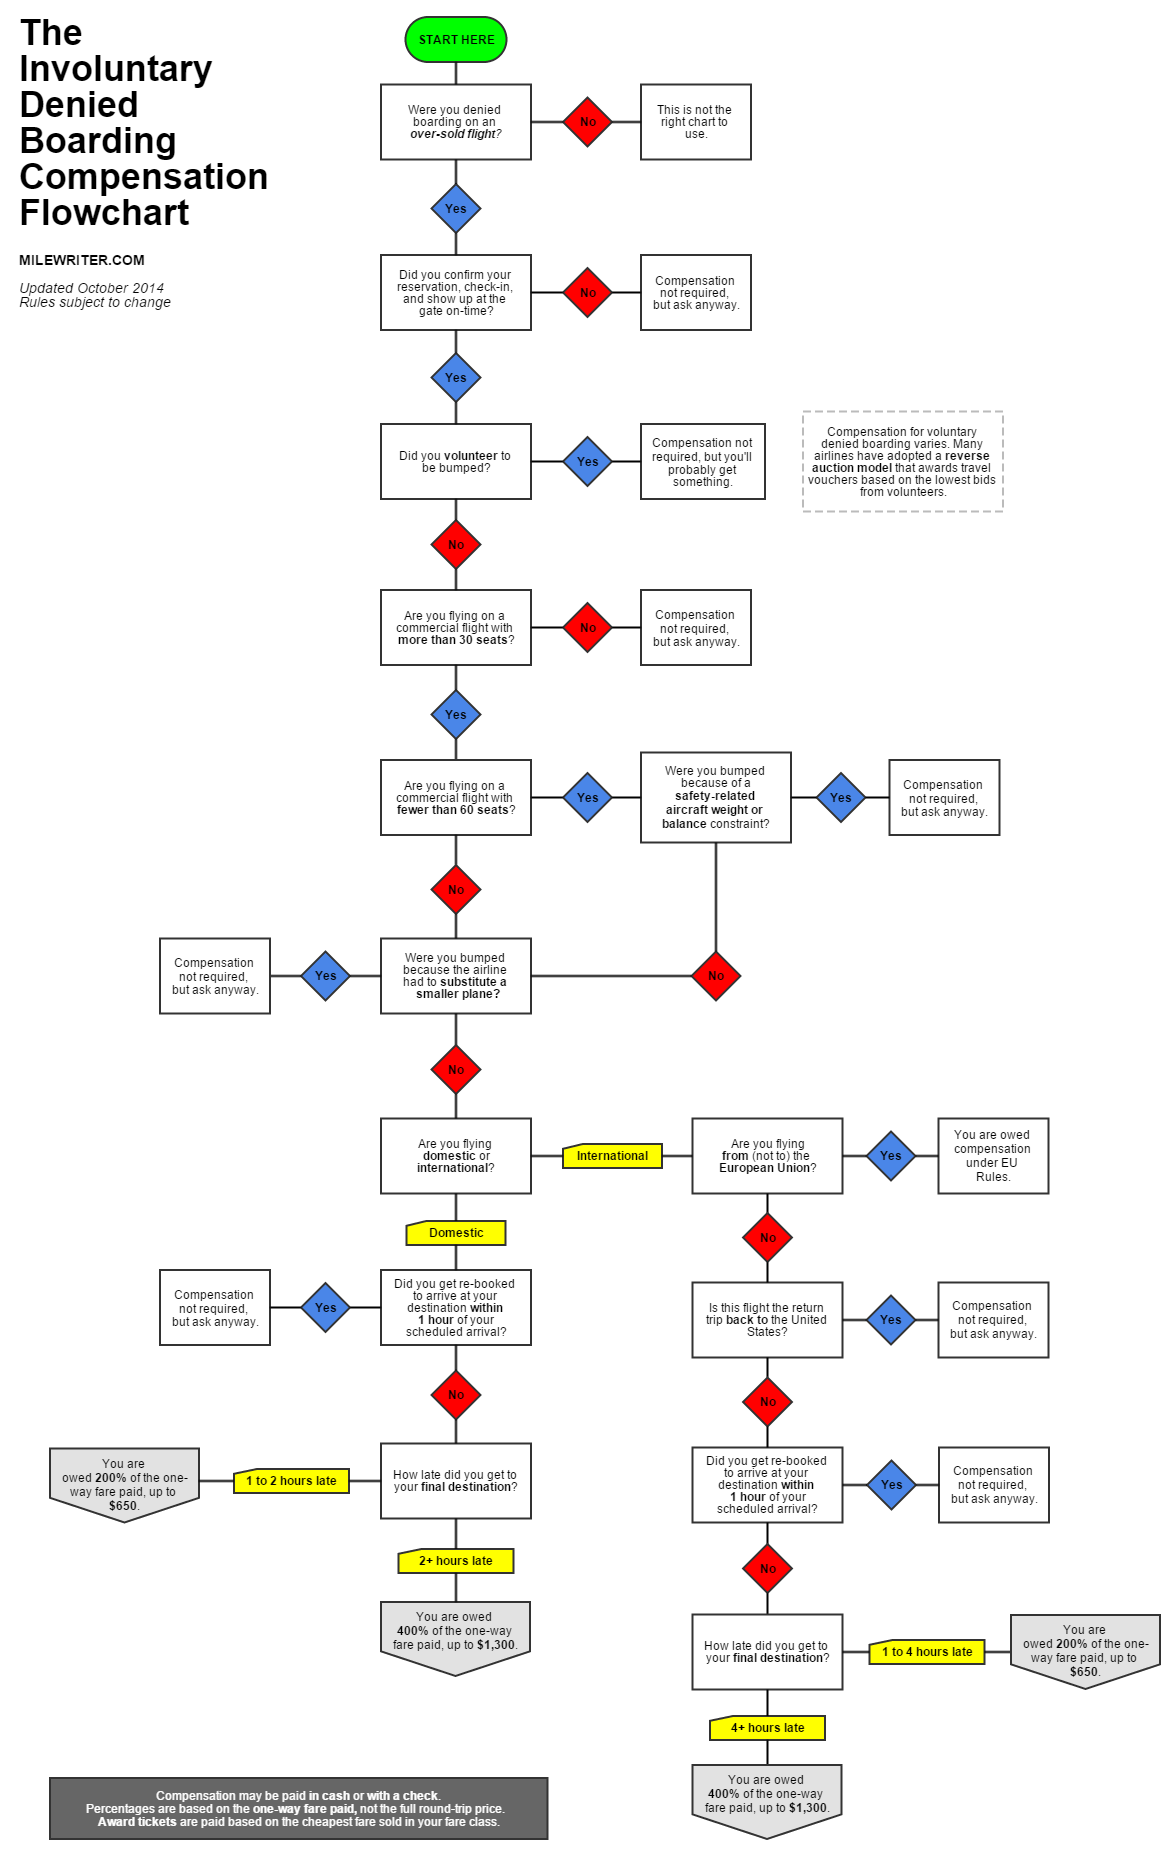 Involuntary Denied Boarding on Oversold Flights - The Flow Chart